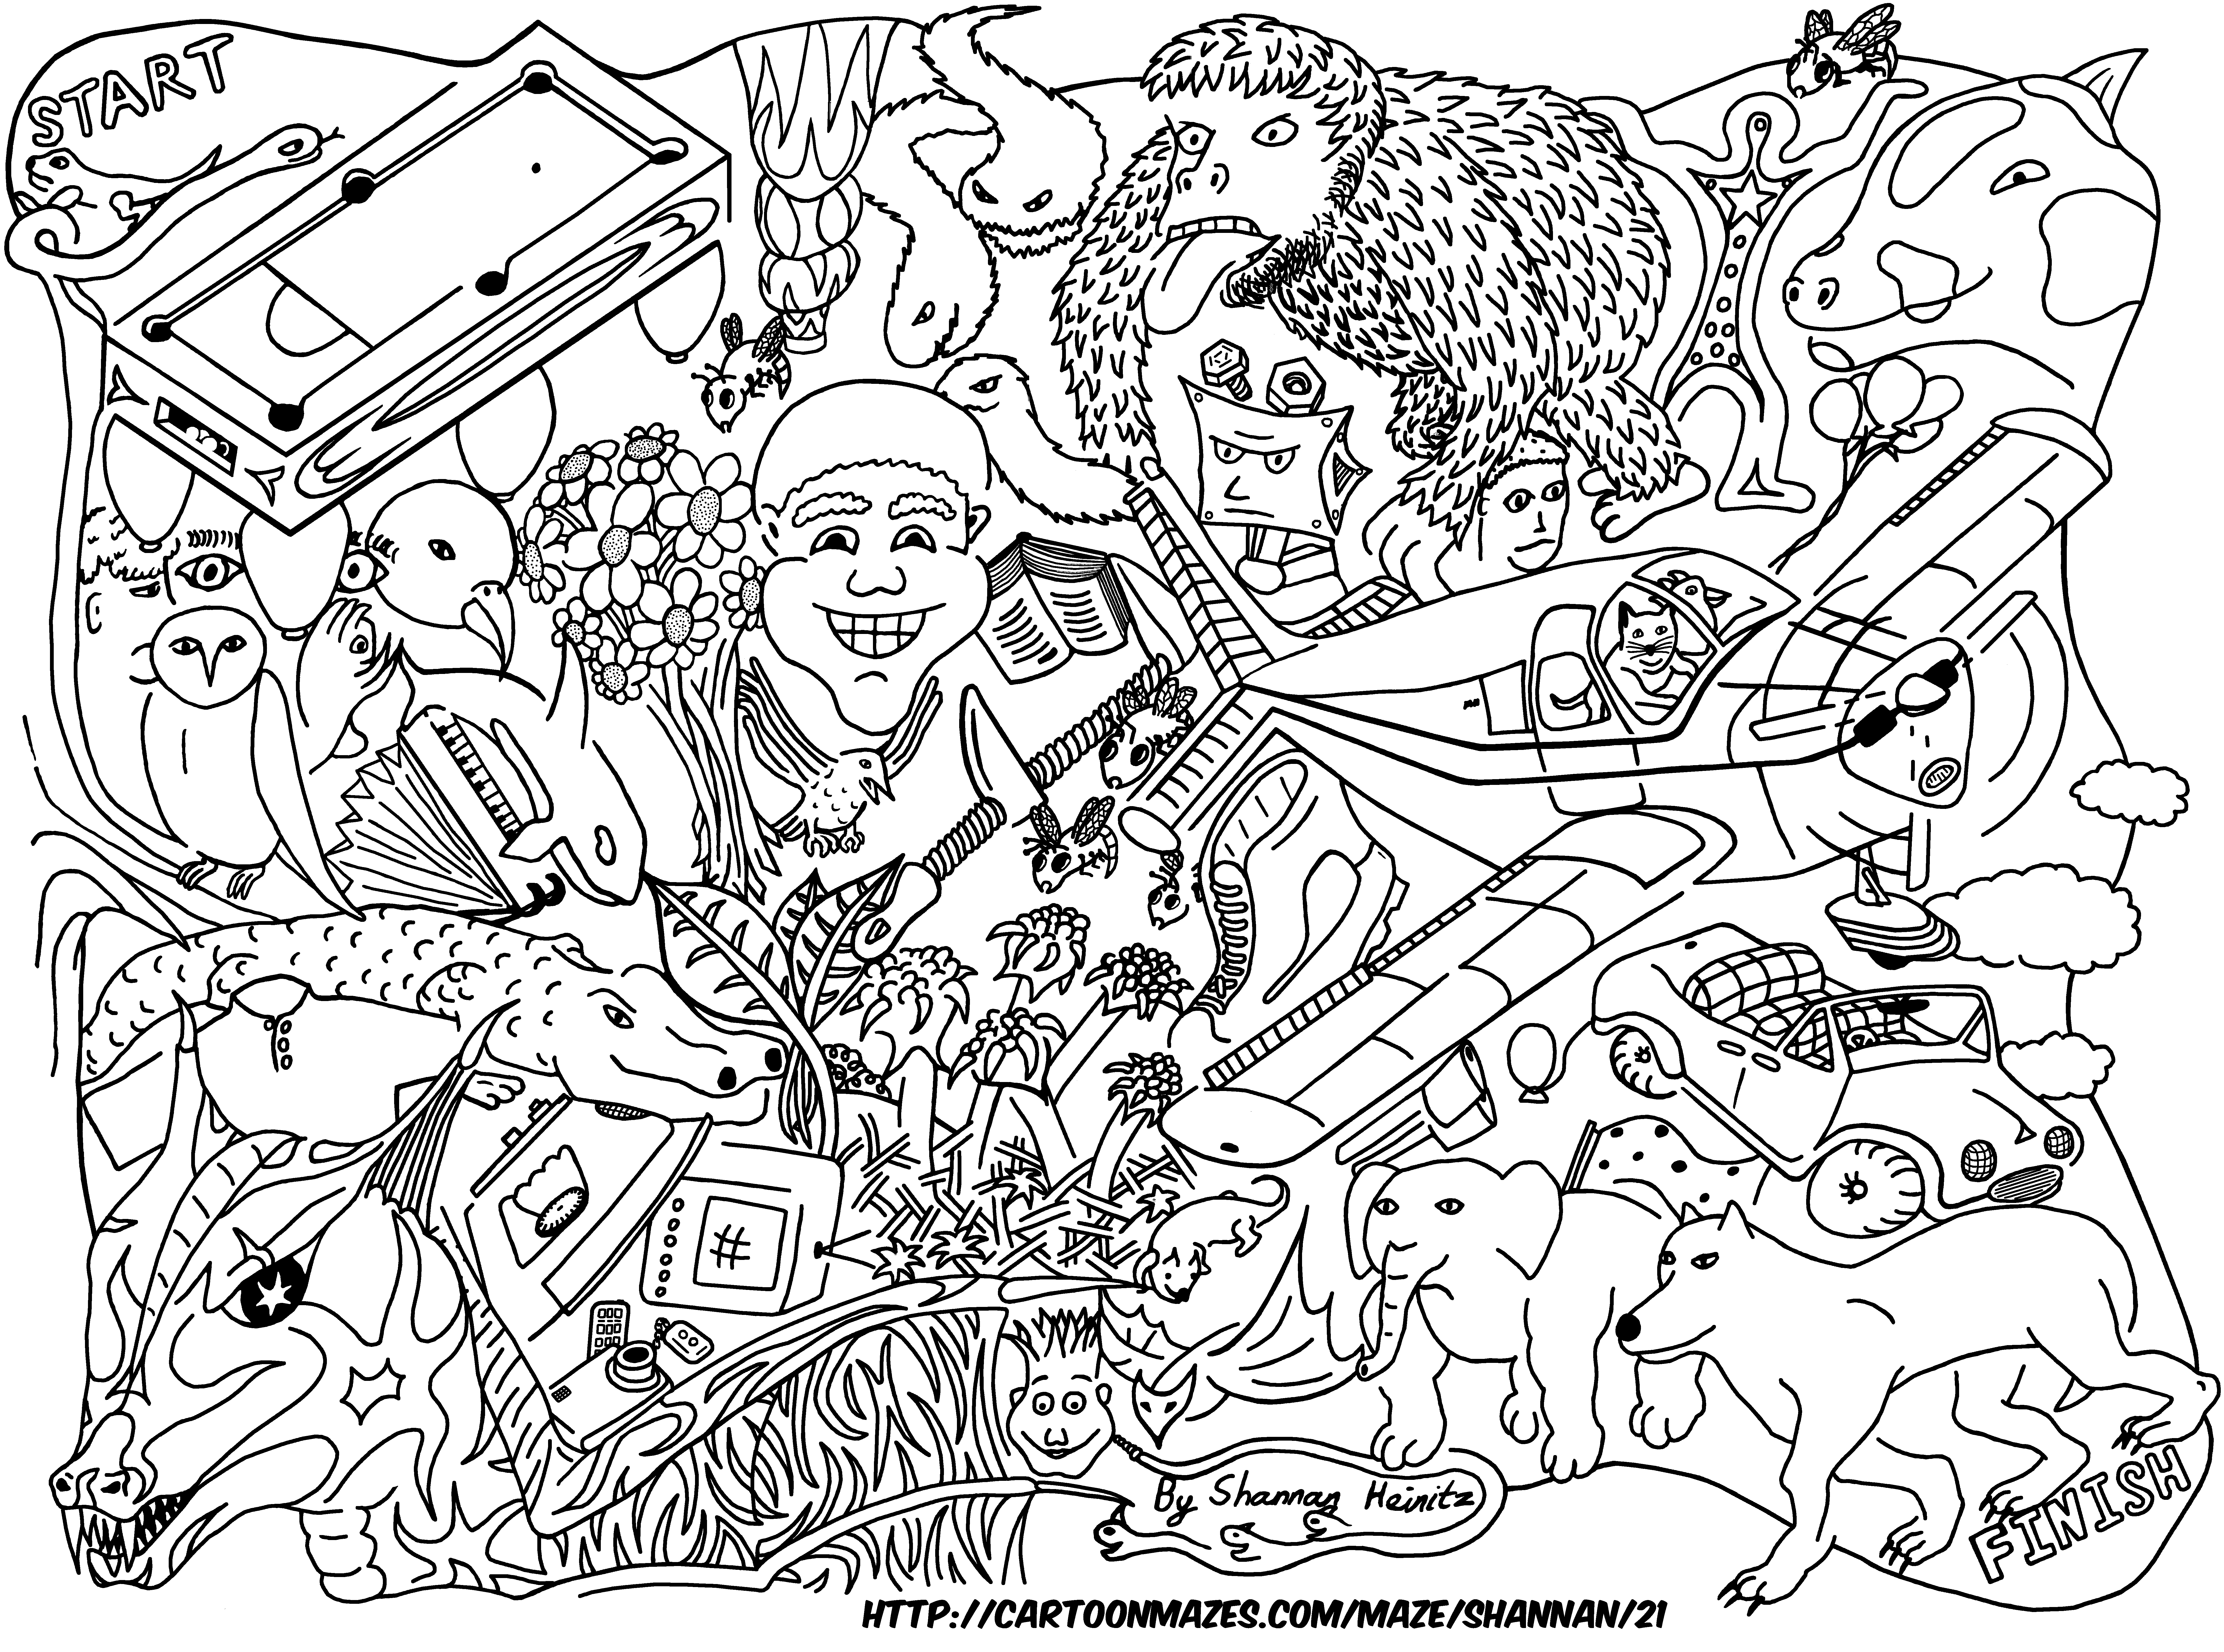 Uncategorized Difficult Mazes To Print cartoon mazes to download the high resolution image for printing